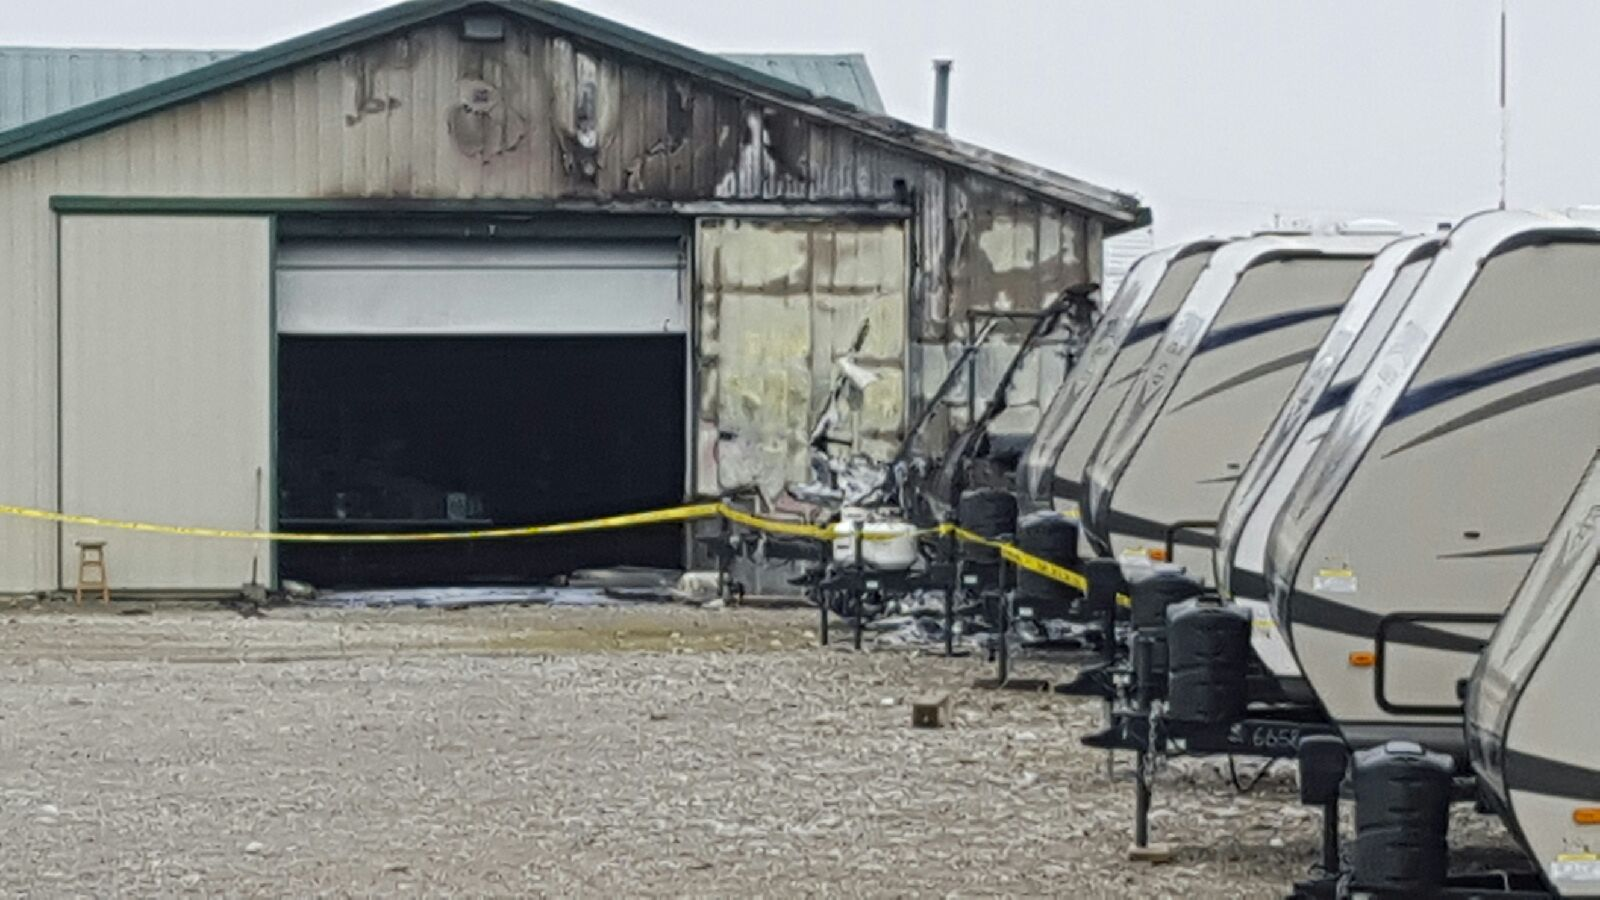 A fire ripped through D&D RV and destroyed five RVs. (WDTN Photo/Ken Jarosik)